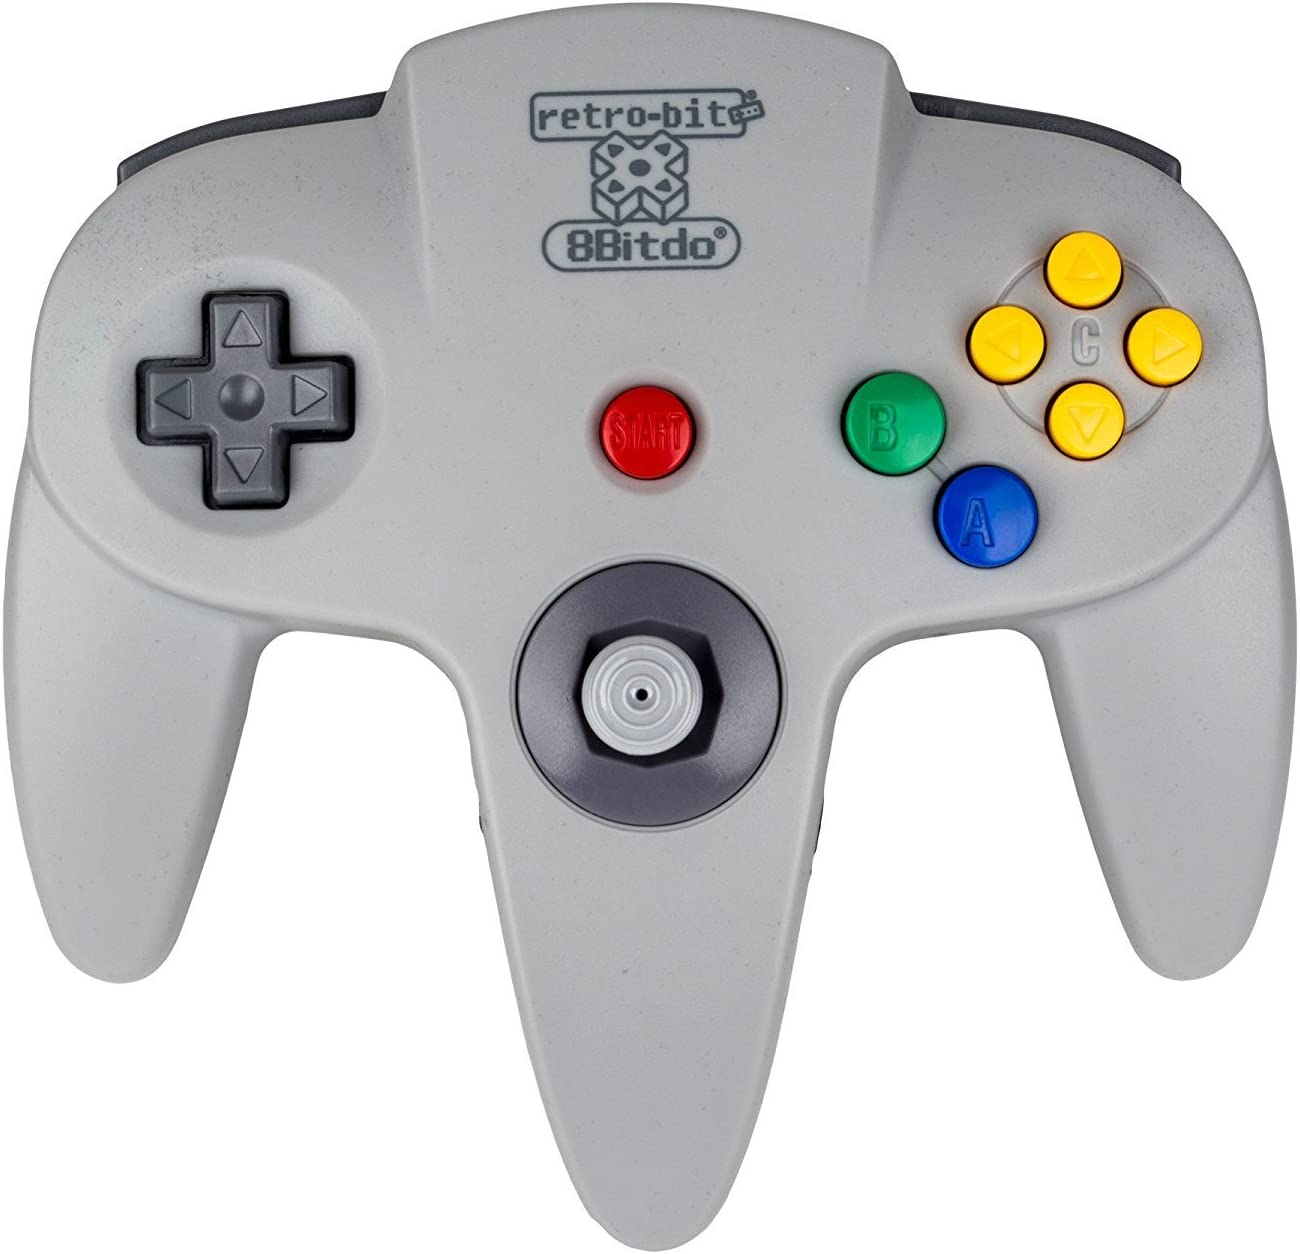 Amazon.com: Retro - Bit 8Bitdo RB8 - 64 Wireless Bluetooth N64 Styled  Controller for iOS, Android, PC, Mac, Linux: Video Games